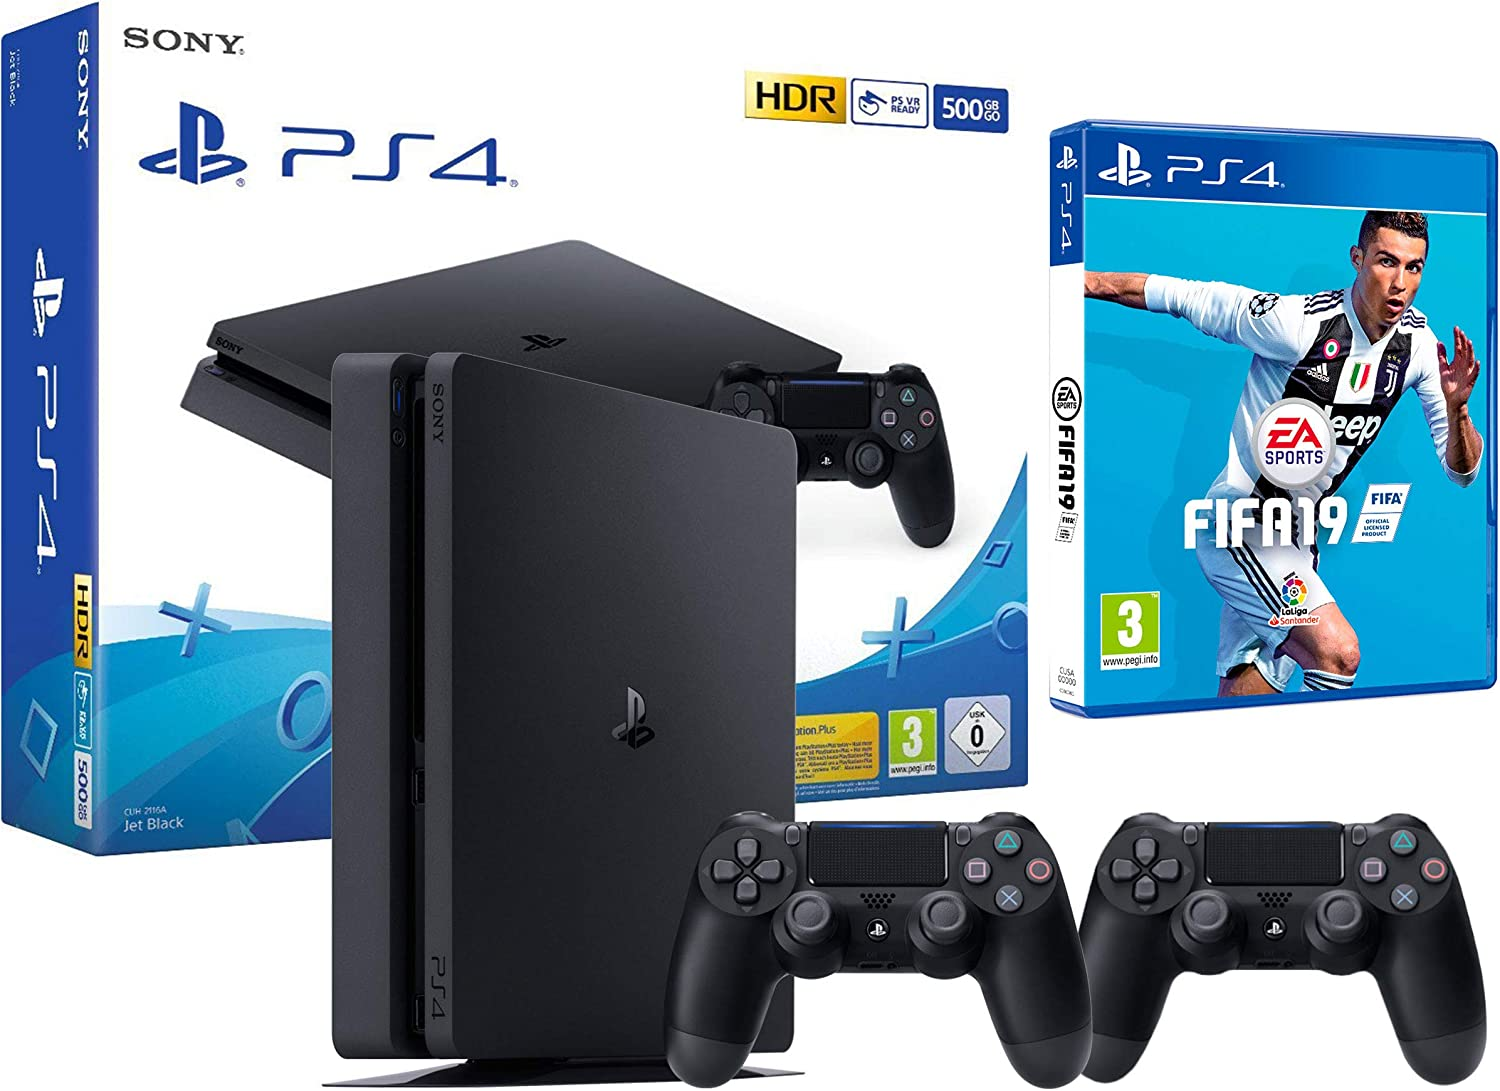 PS4 Slim 500Gb Negra Playstation 4 Consola + 2 Mandos Dualshock 4 + FIFA 19: Amazon.es: Videojuegos